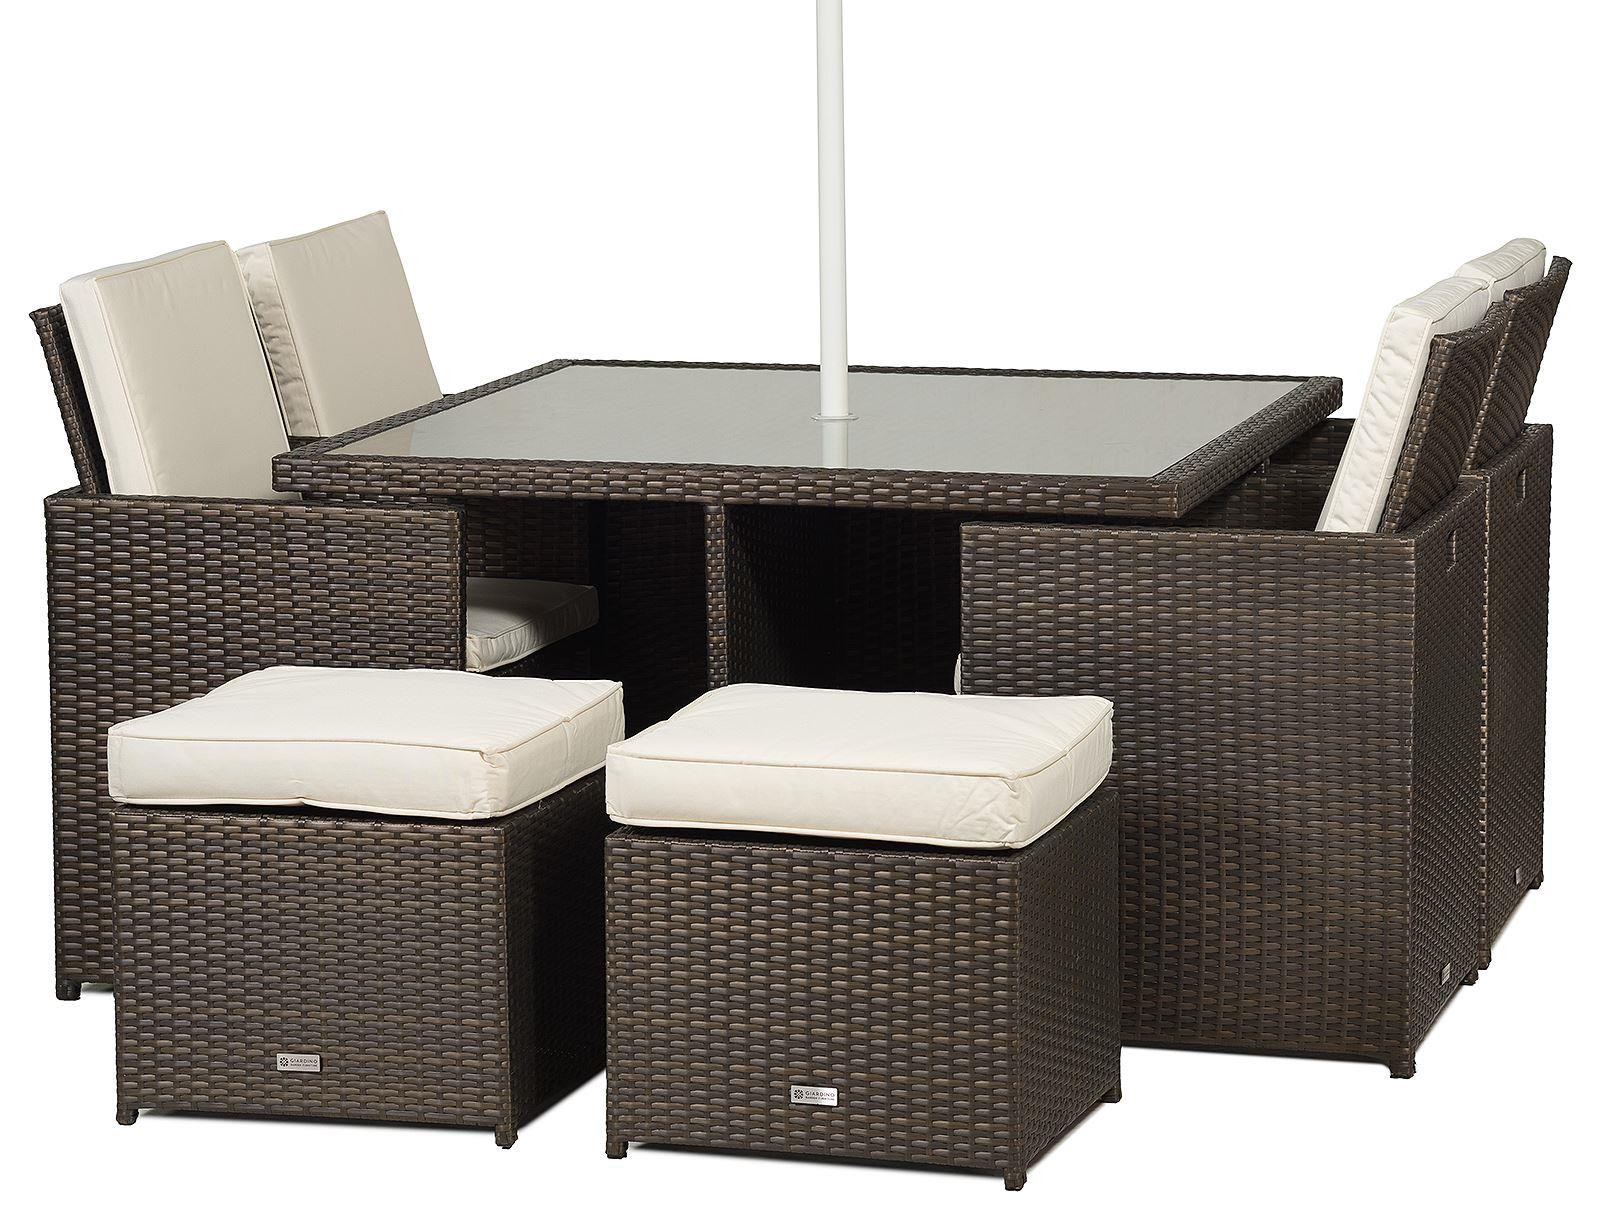 giardino rattan garden furniture 4 seat cube dining set